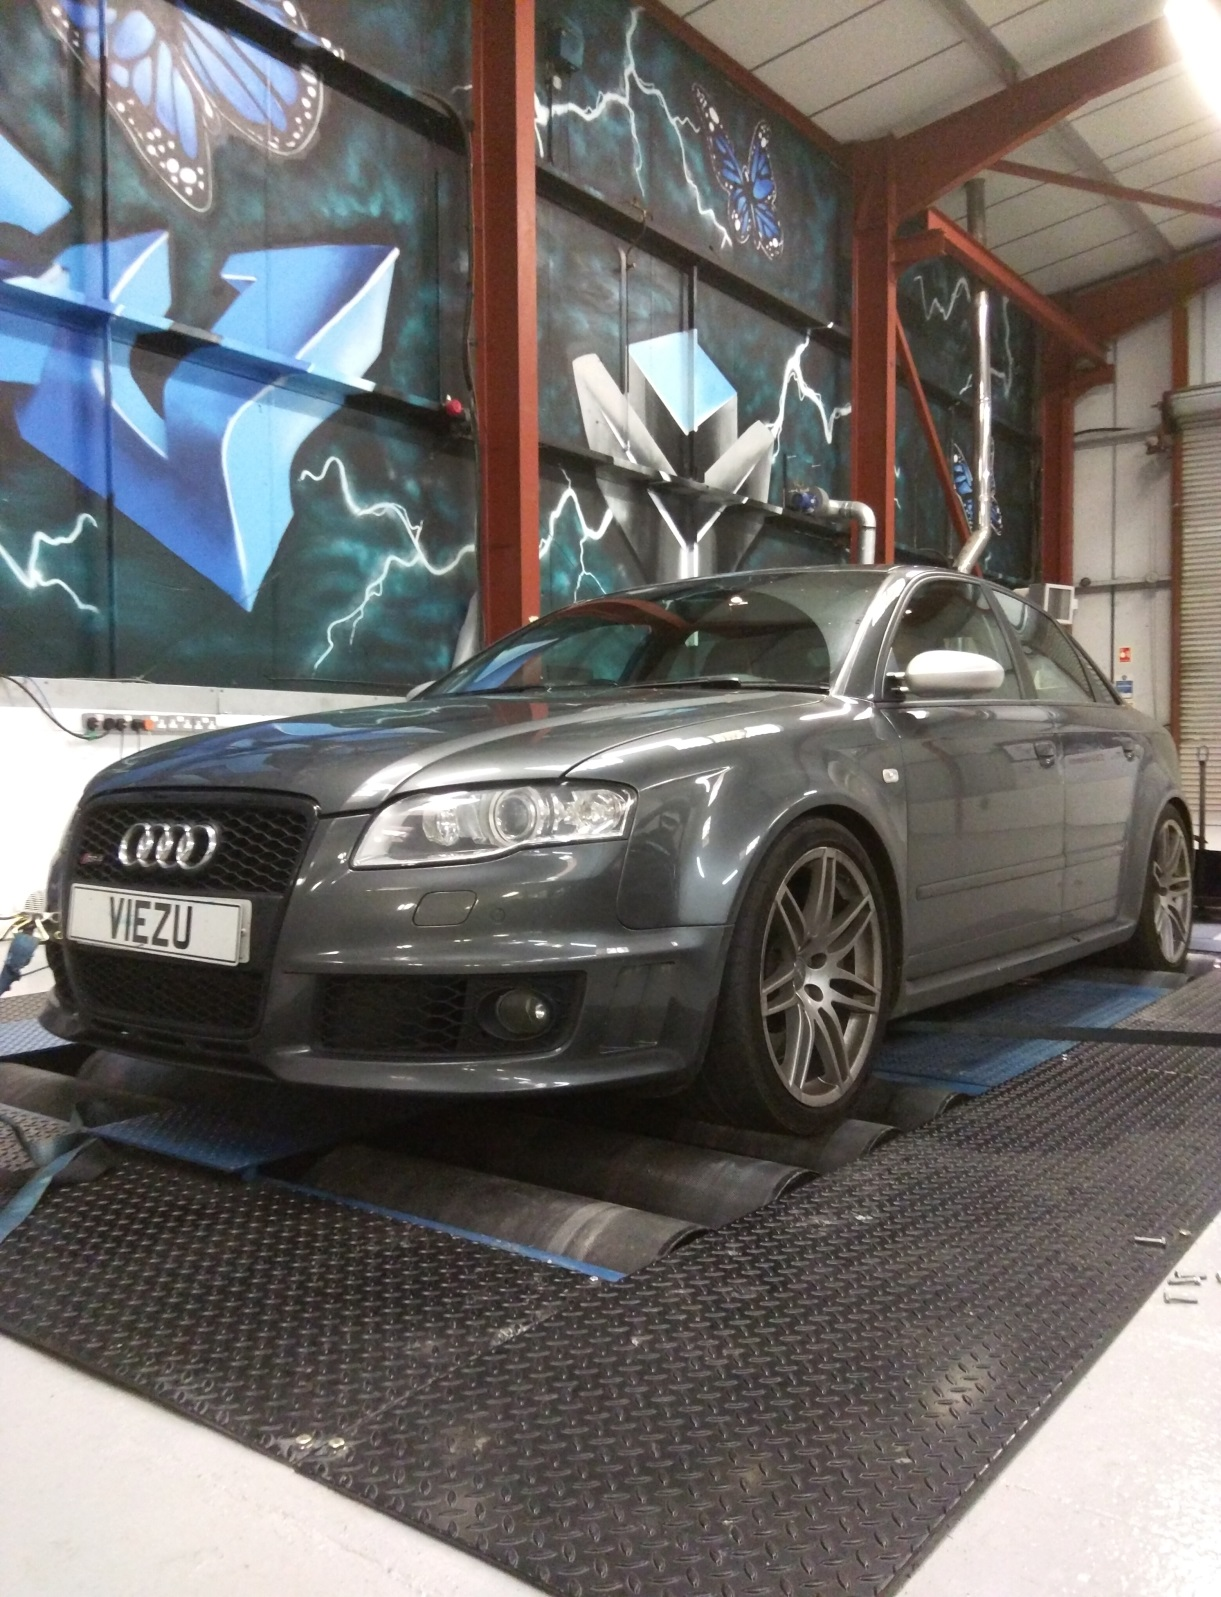 Audi S4 tuning remapping Viezu